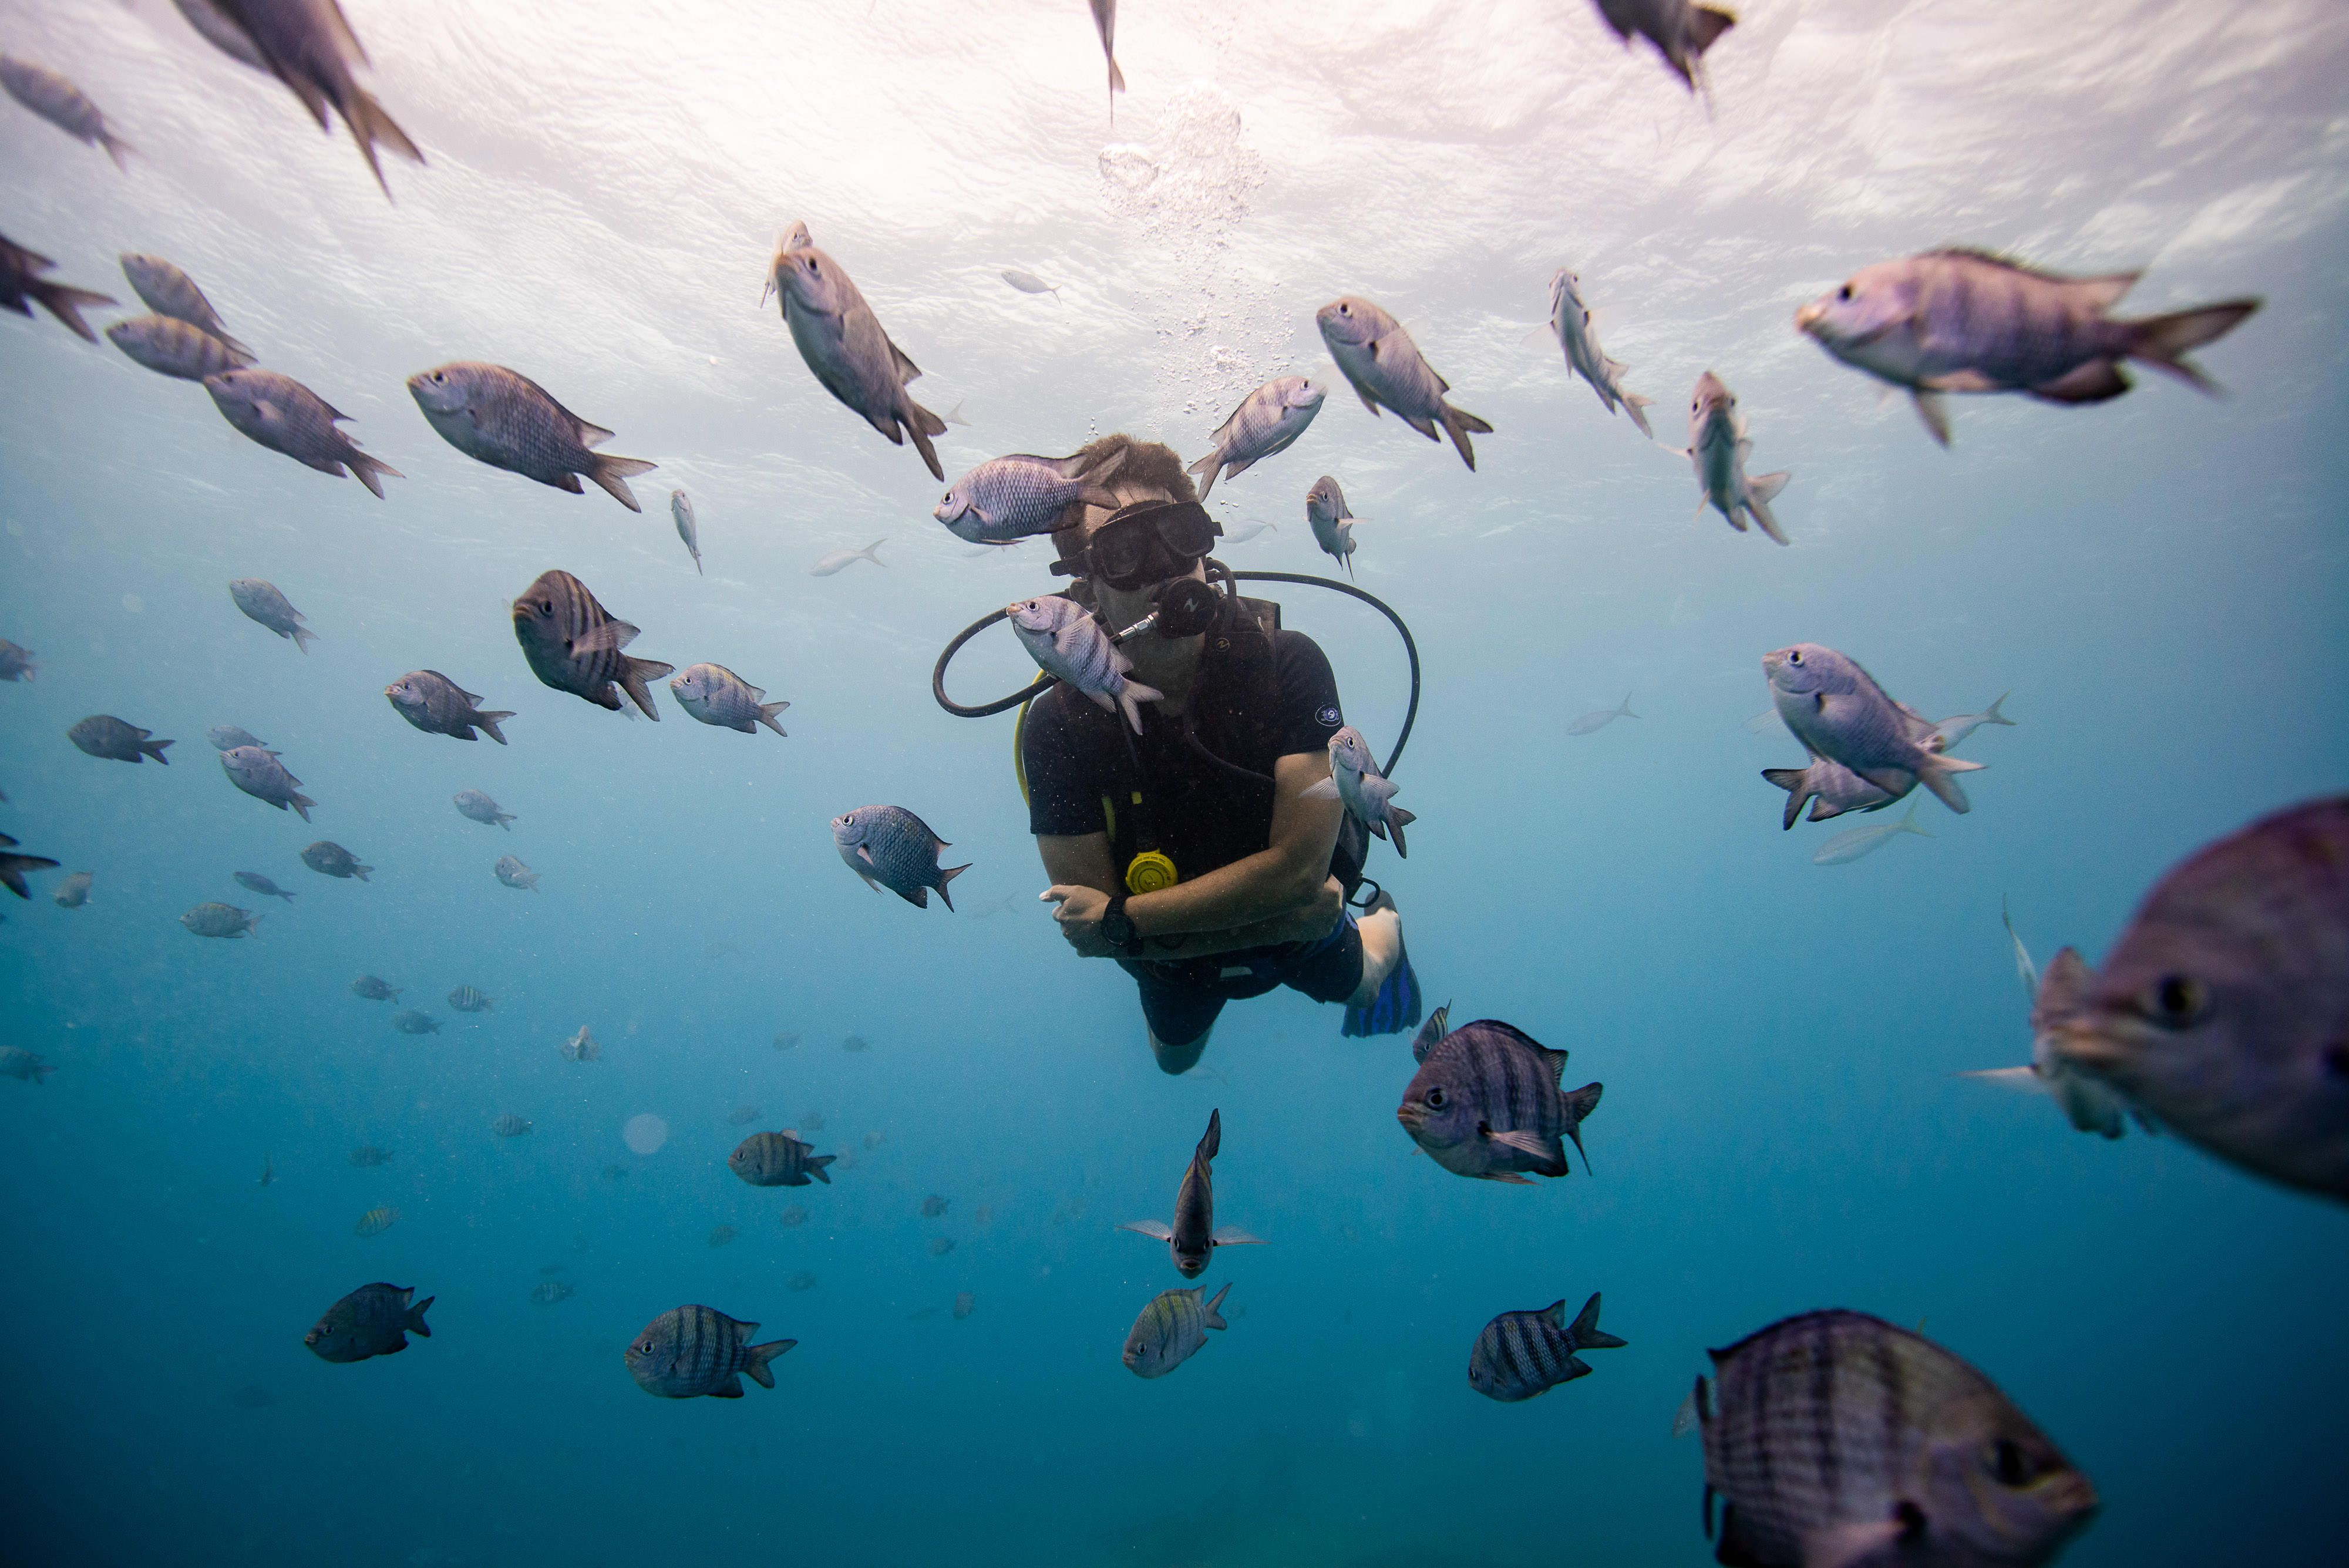 a diver surrounded by fish